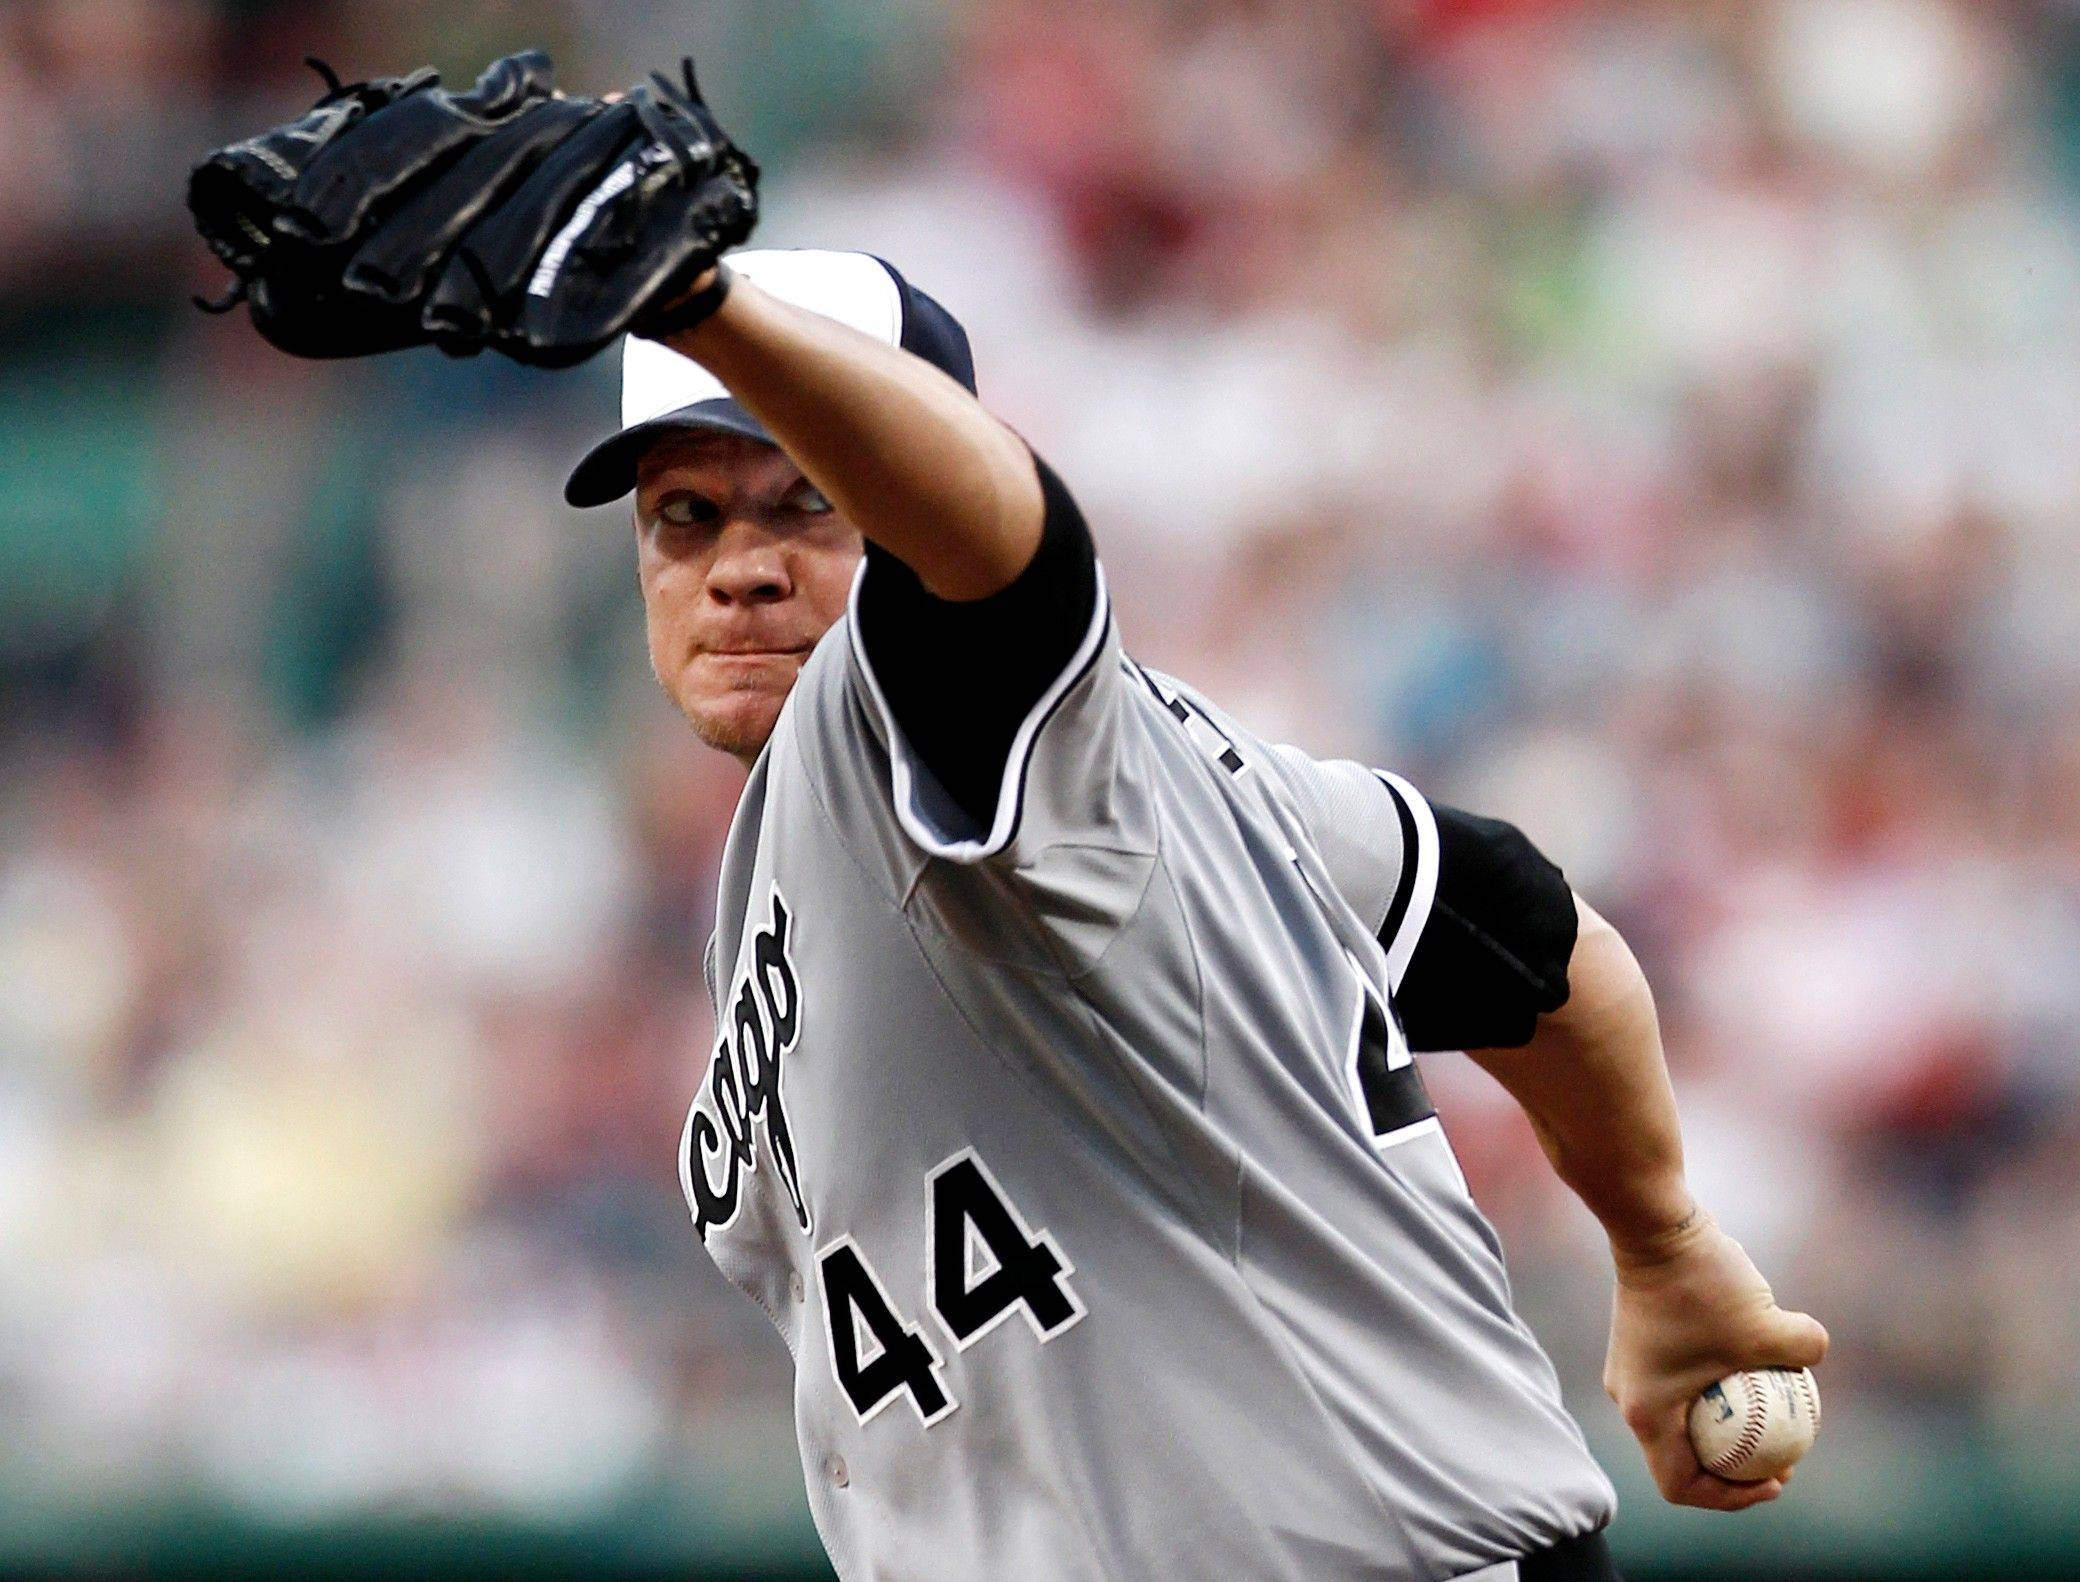 White Sox starting pitcher Jake Peavy delivers against Red Sox on Monday.